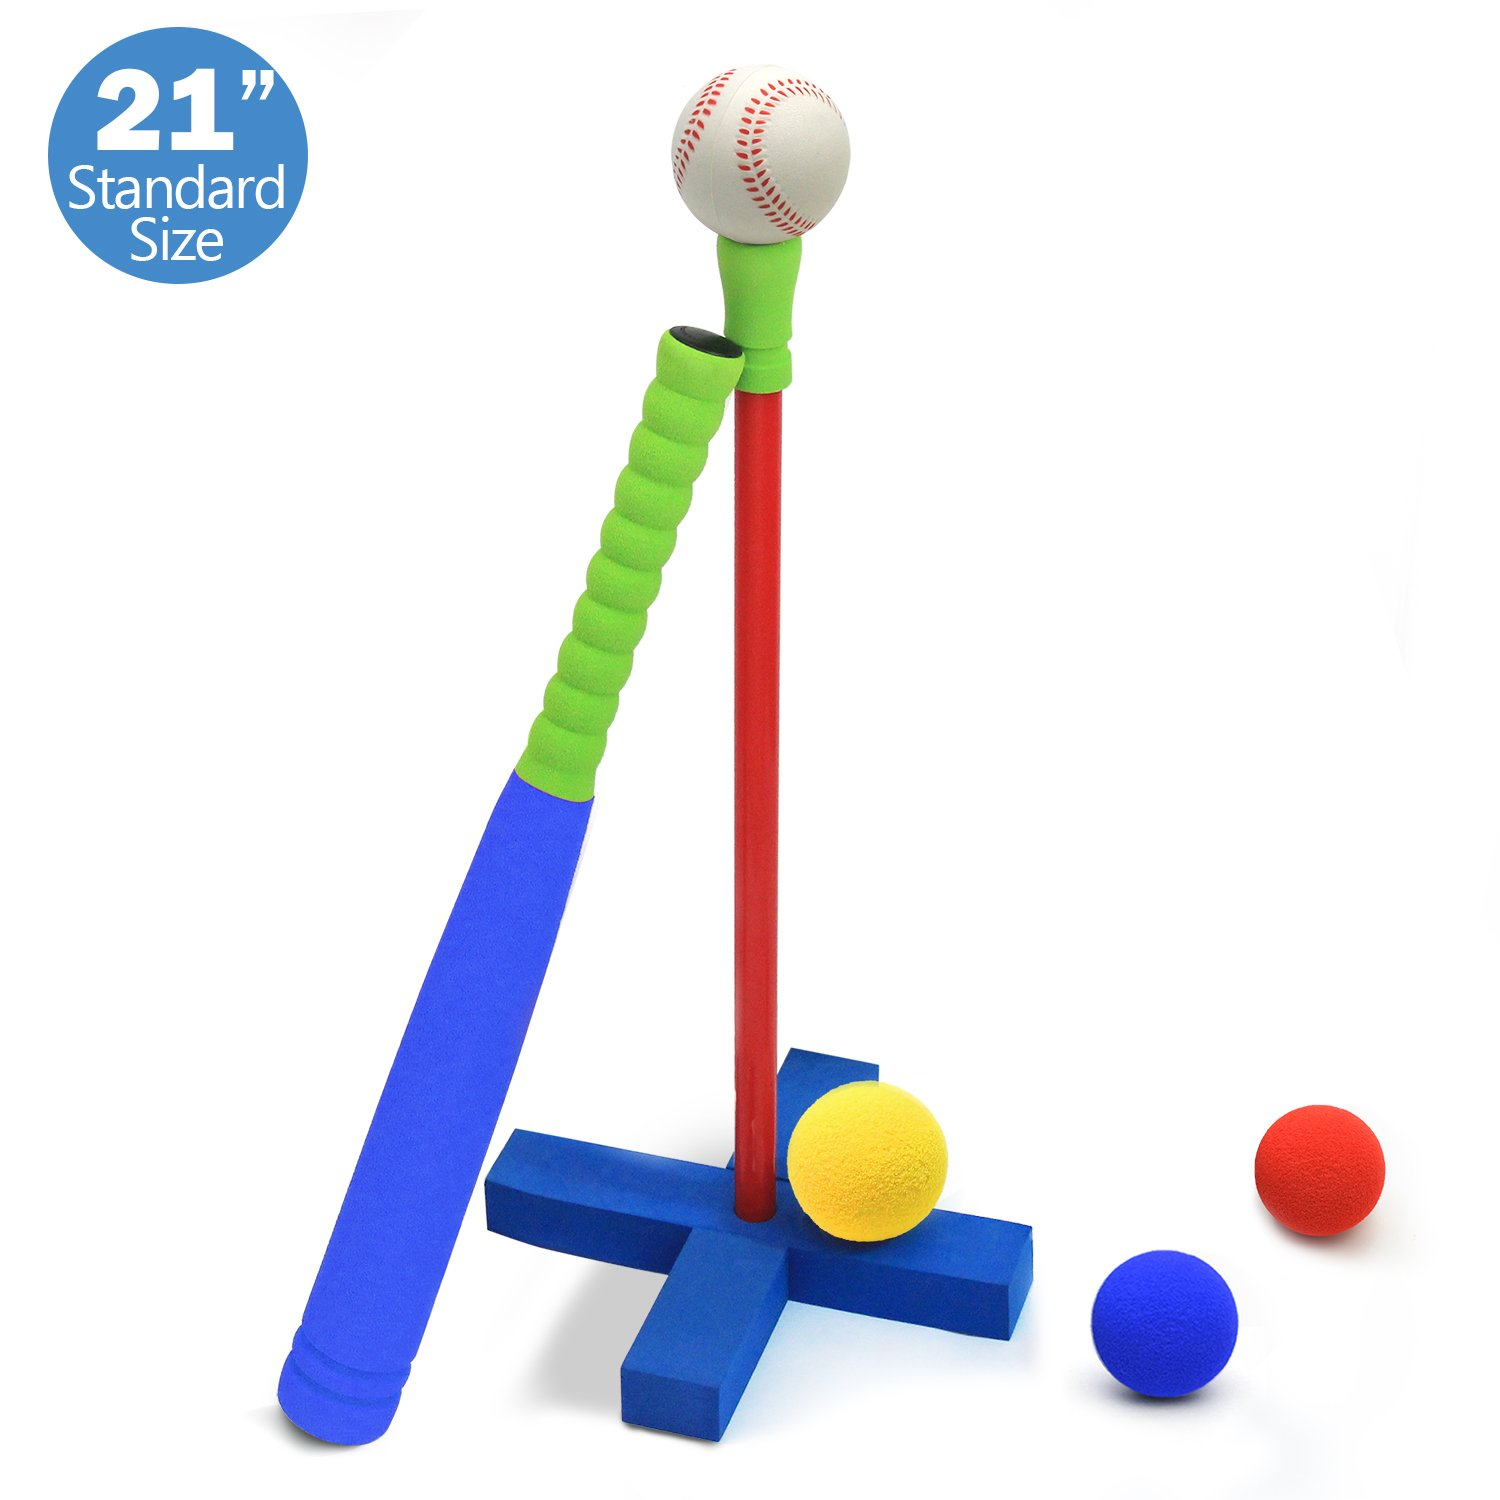 CELEMOON [Kids T-Ball Set Toy] Kids Foam T-Ball/Baseball Set Toy, 3 Different Sized Balls, Carry/Organize Bag Included, for Kids Over 3 Years Old, Blue by CELEMOON